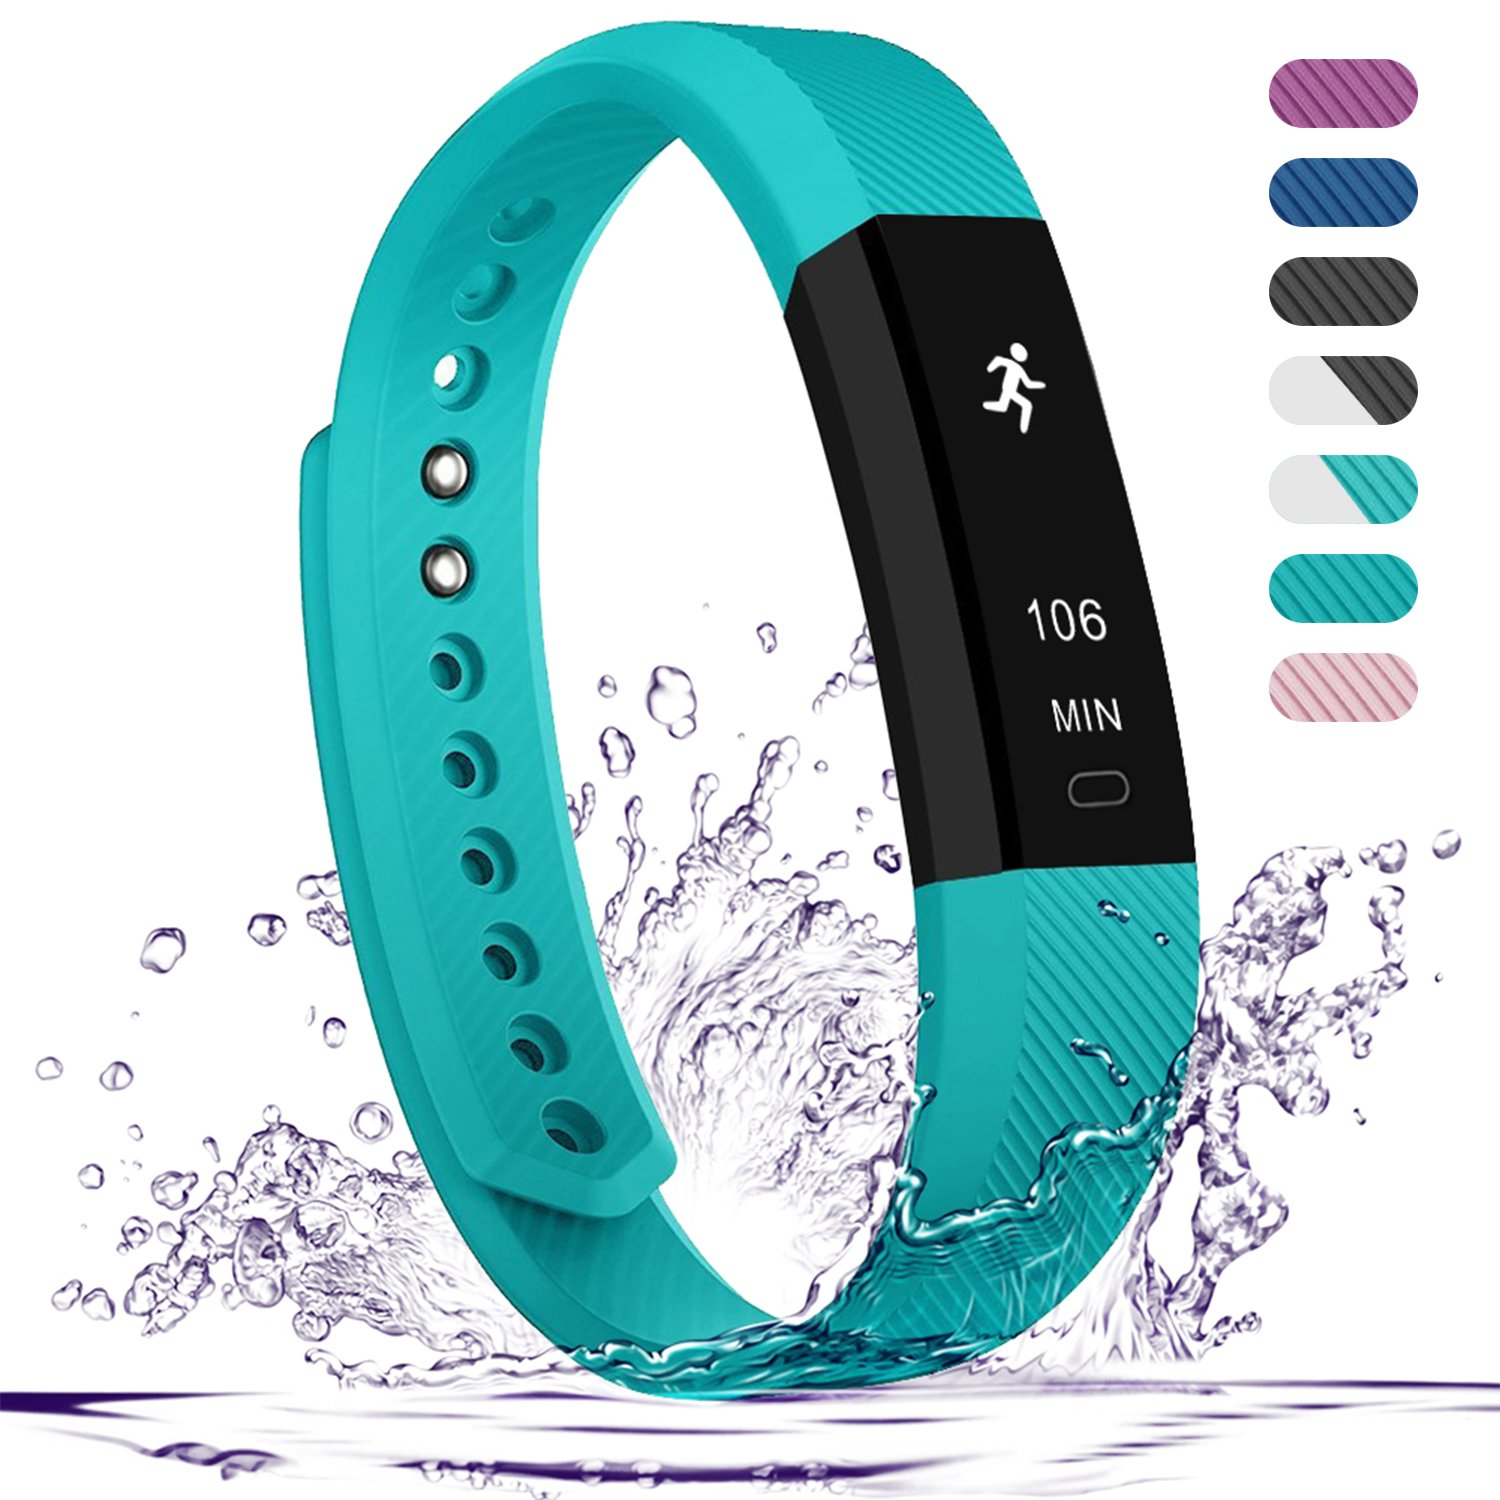 Teslasz Fitness Tracker, Sleep Monitor Calorie Counter Pedometer Sport Activity Tracker for Android and iOS Smart Phone,Teal